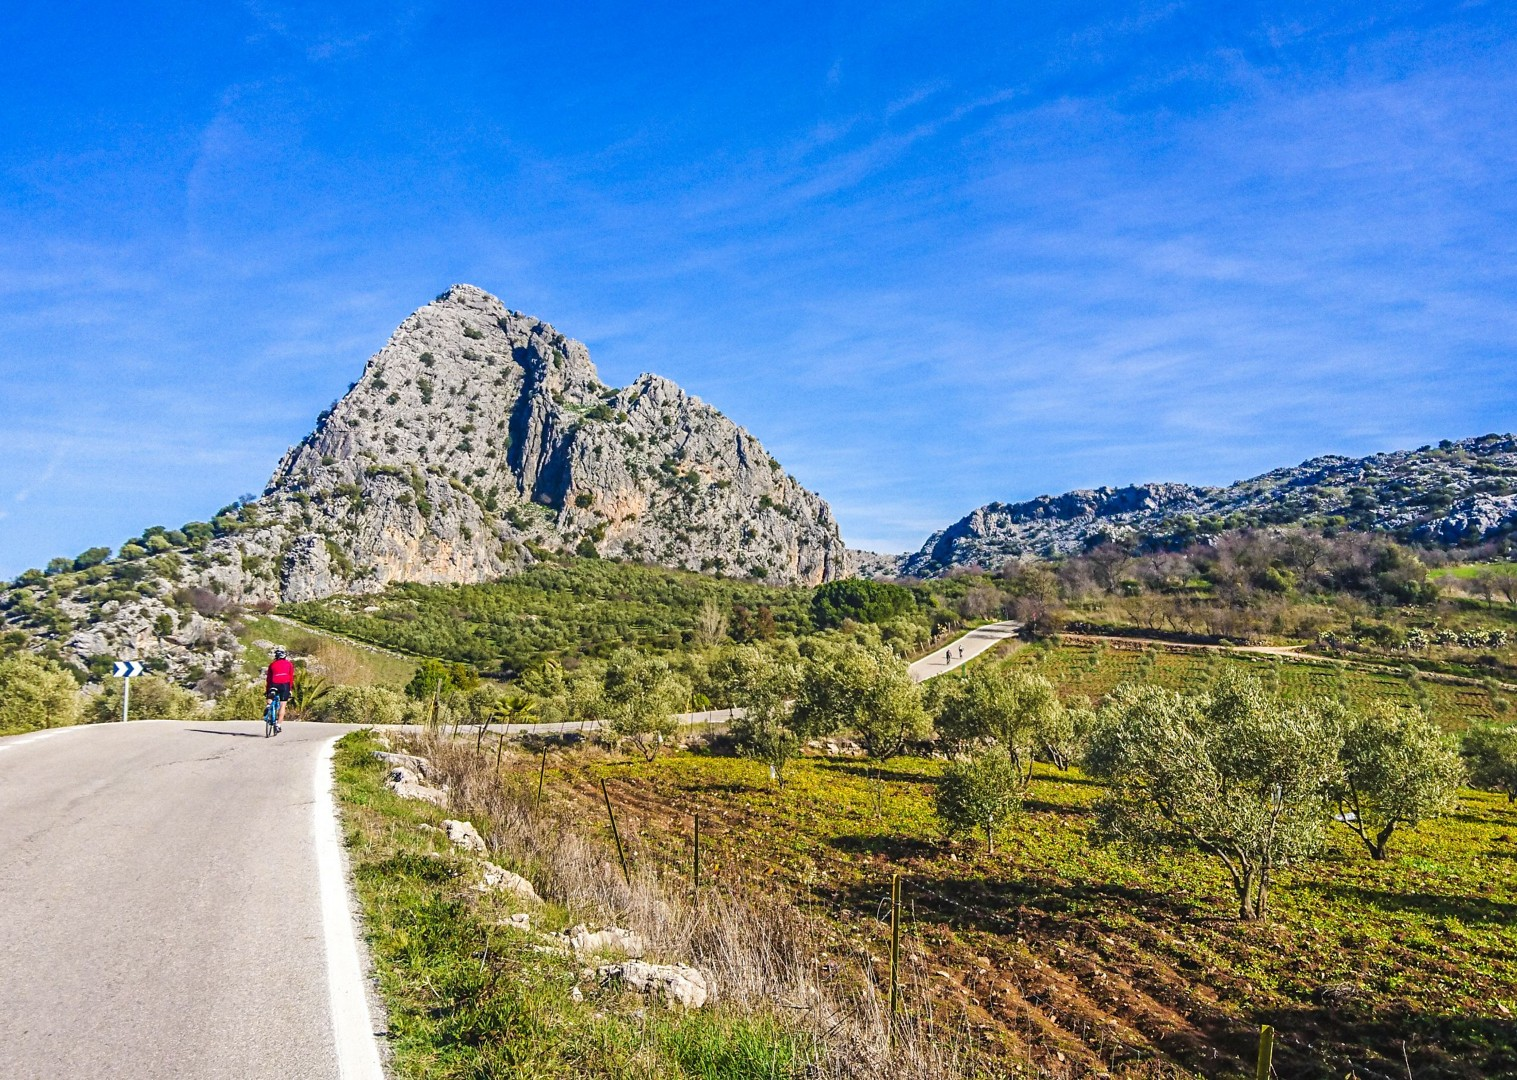 limestone-mountain-backgrounds-road-cycling-tour-spain.jpg - Southern Spain - Andalucia - Los Pueblos Blancos - Road Cycling